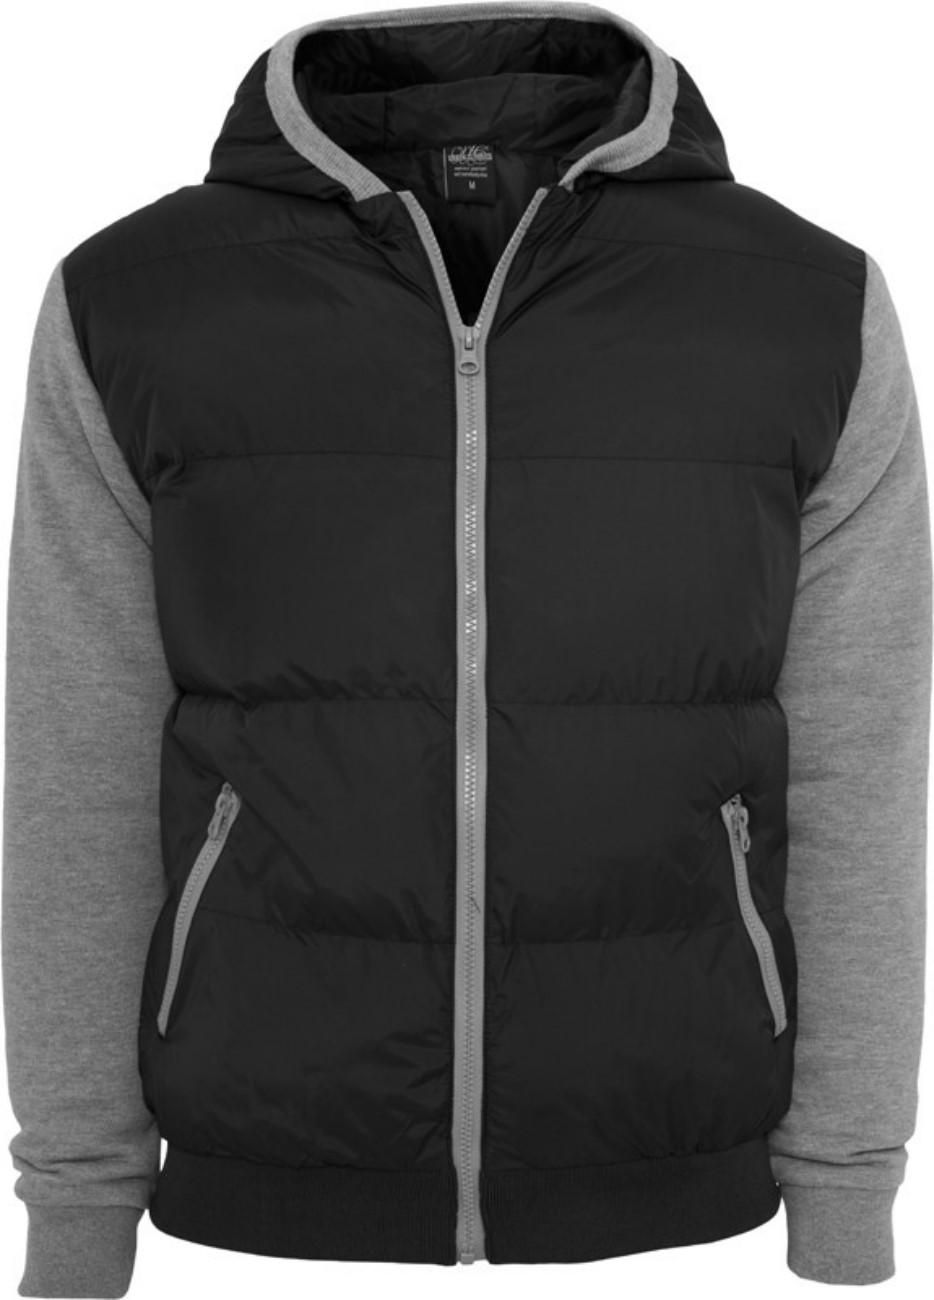 Urban Classics Herren Sweat Nylon Bubble Zip Kapuzenpullover